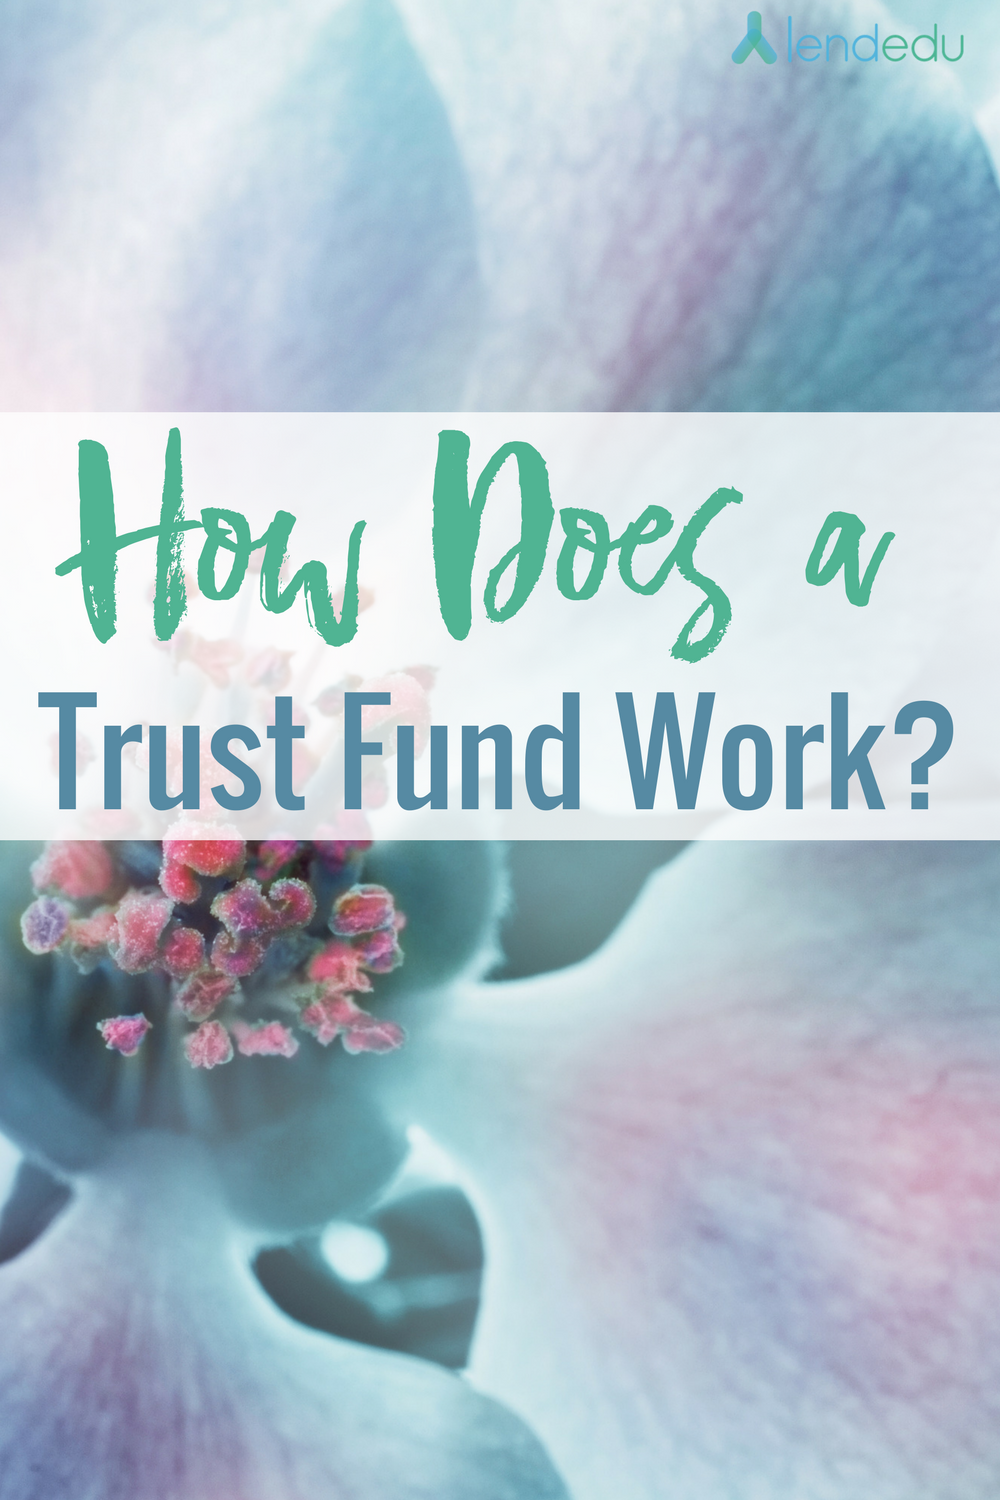 Trust funds are what